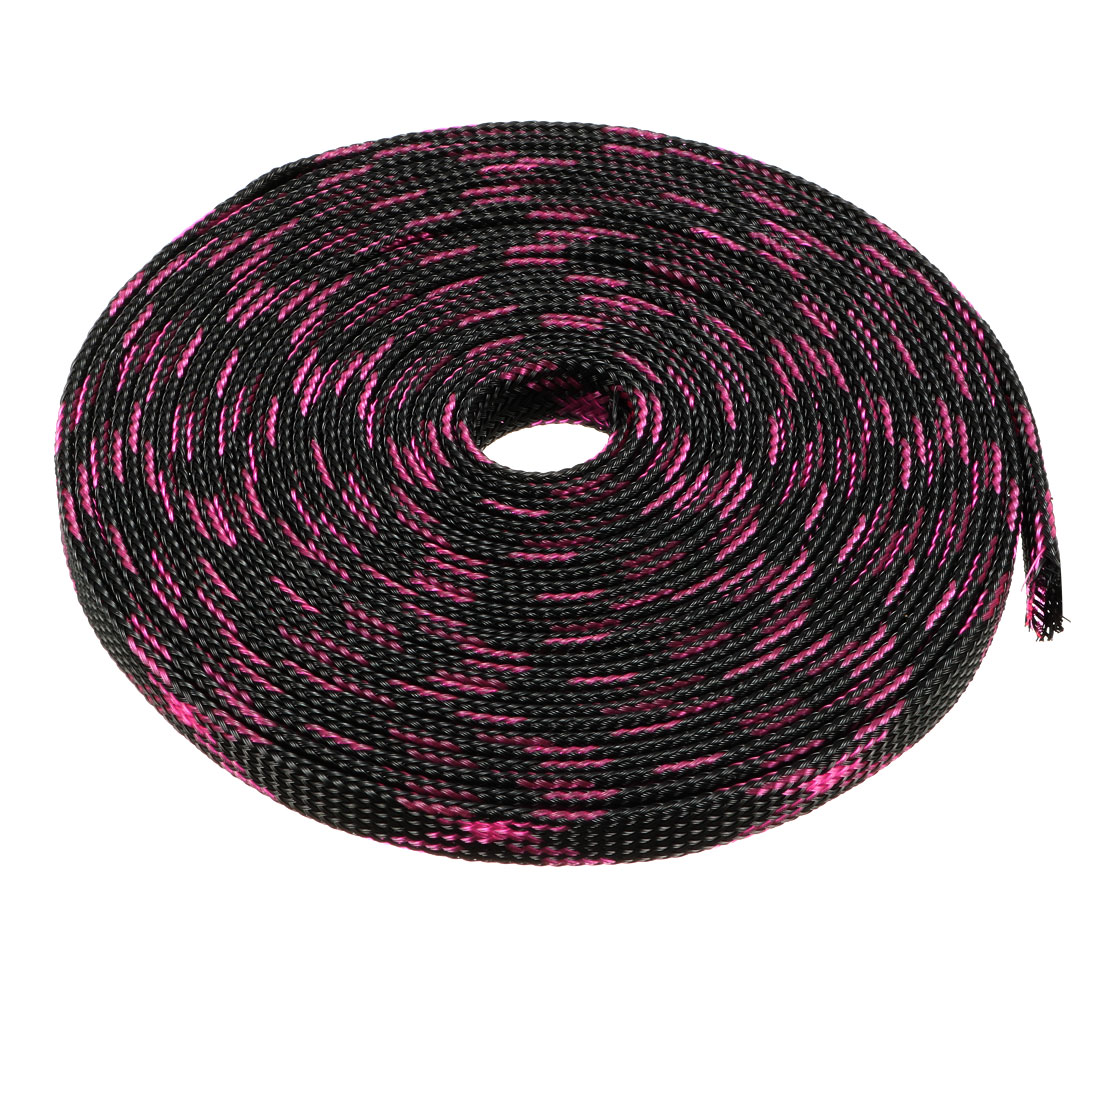 8mm Dia Tight Braided PET Expandable Sleeving Cable Wrap Sheath Black Pink 5M Length